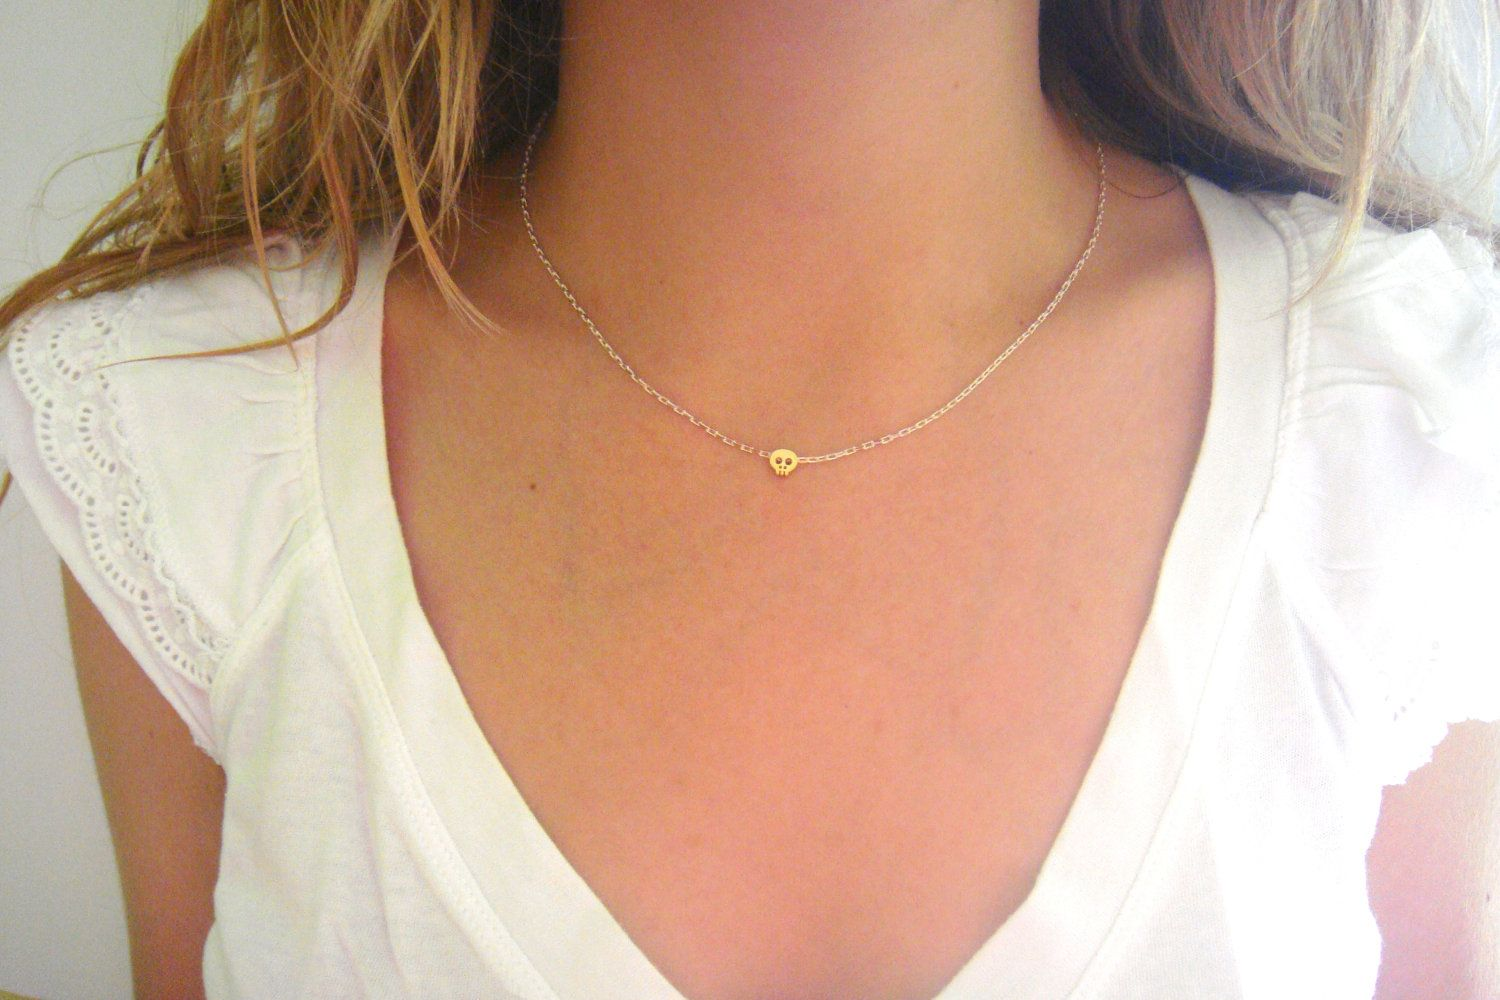 products compassion s necklace heart jewelry love women gold tiny lil